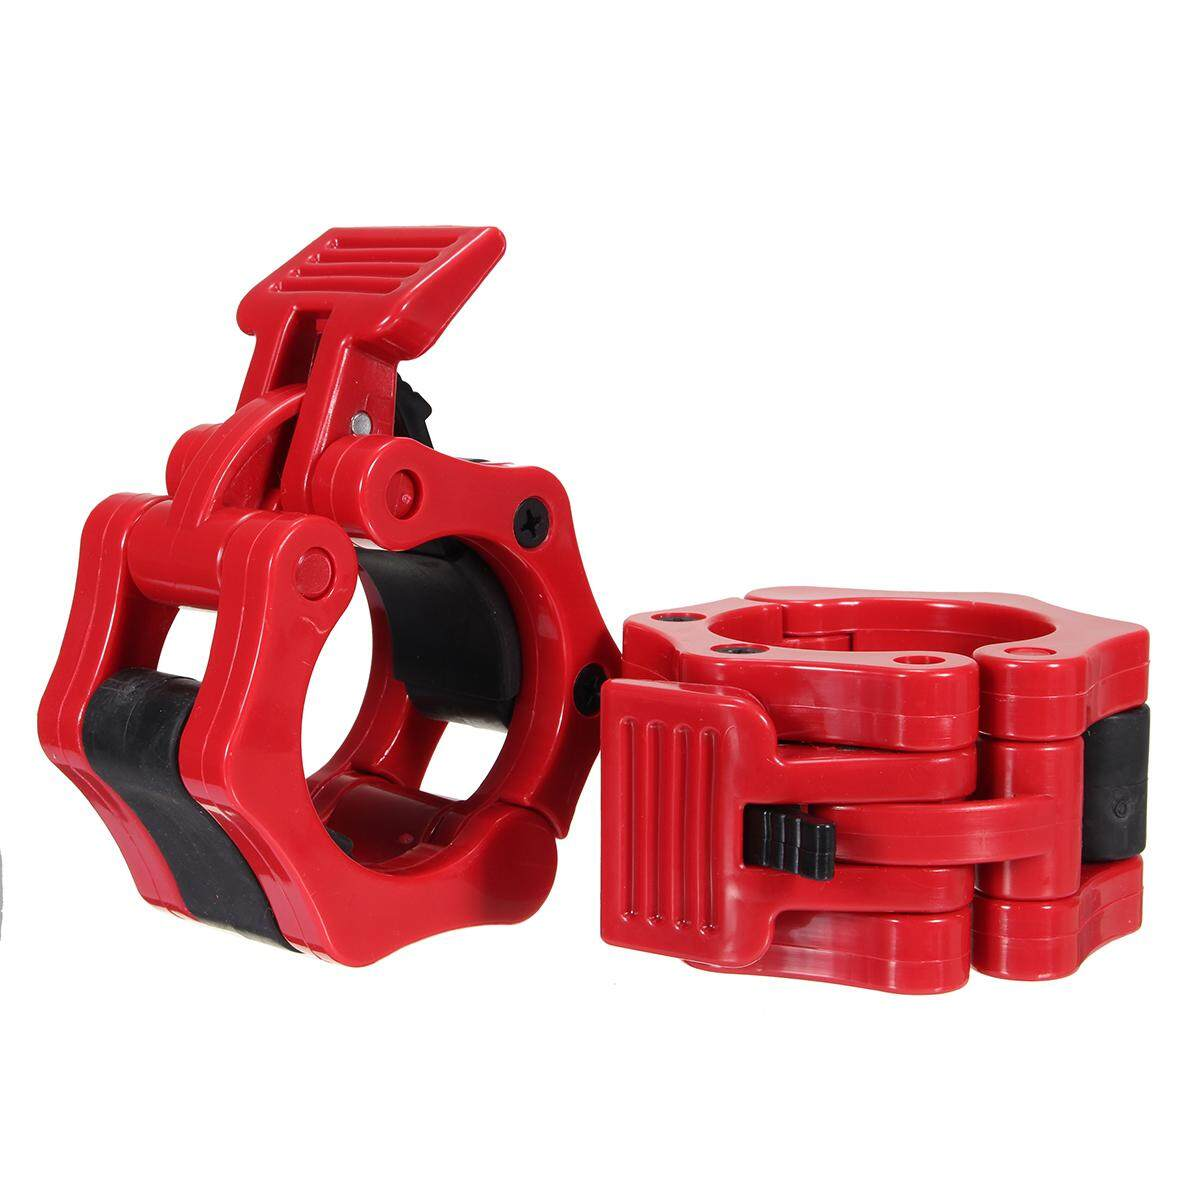 1 Pairs 50mm Olympic Barbell Lock Clamp Collar Clip Dumbbell Spinlock By Freebang.